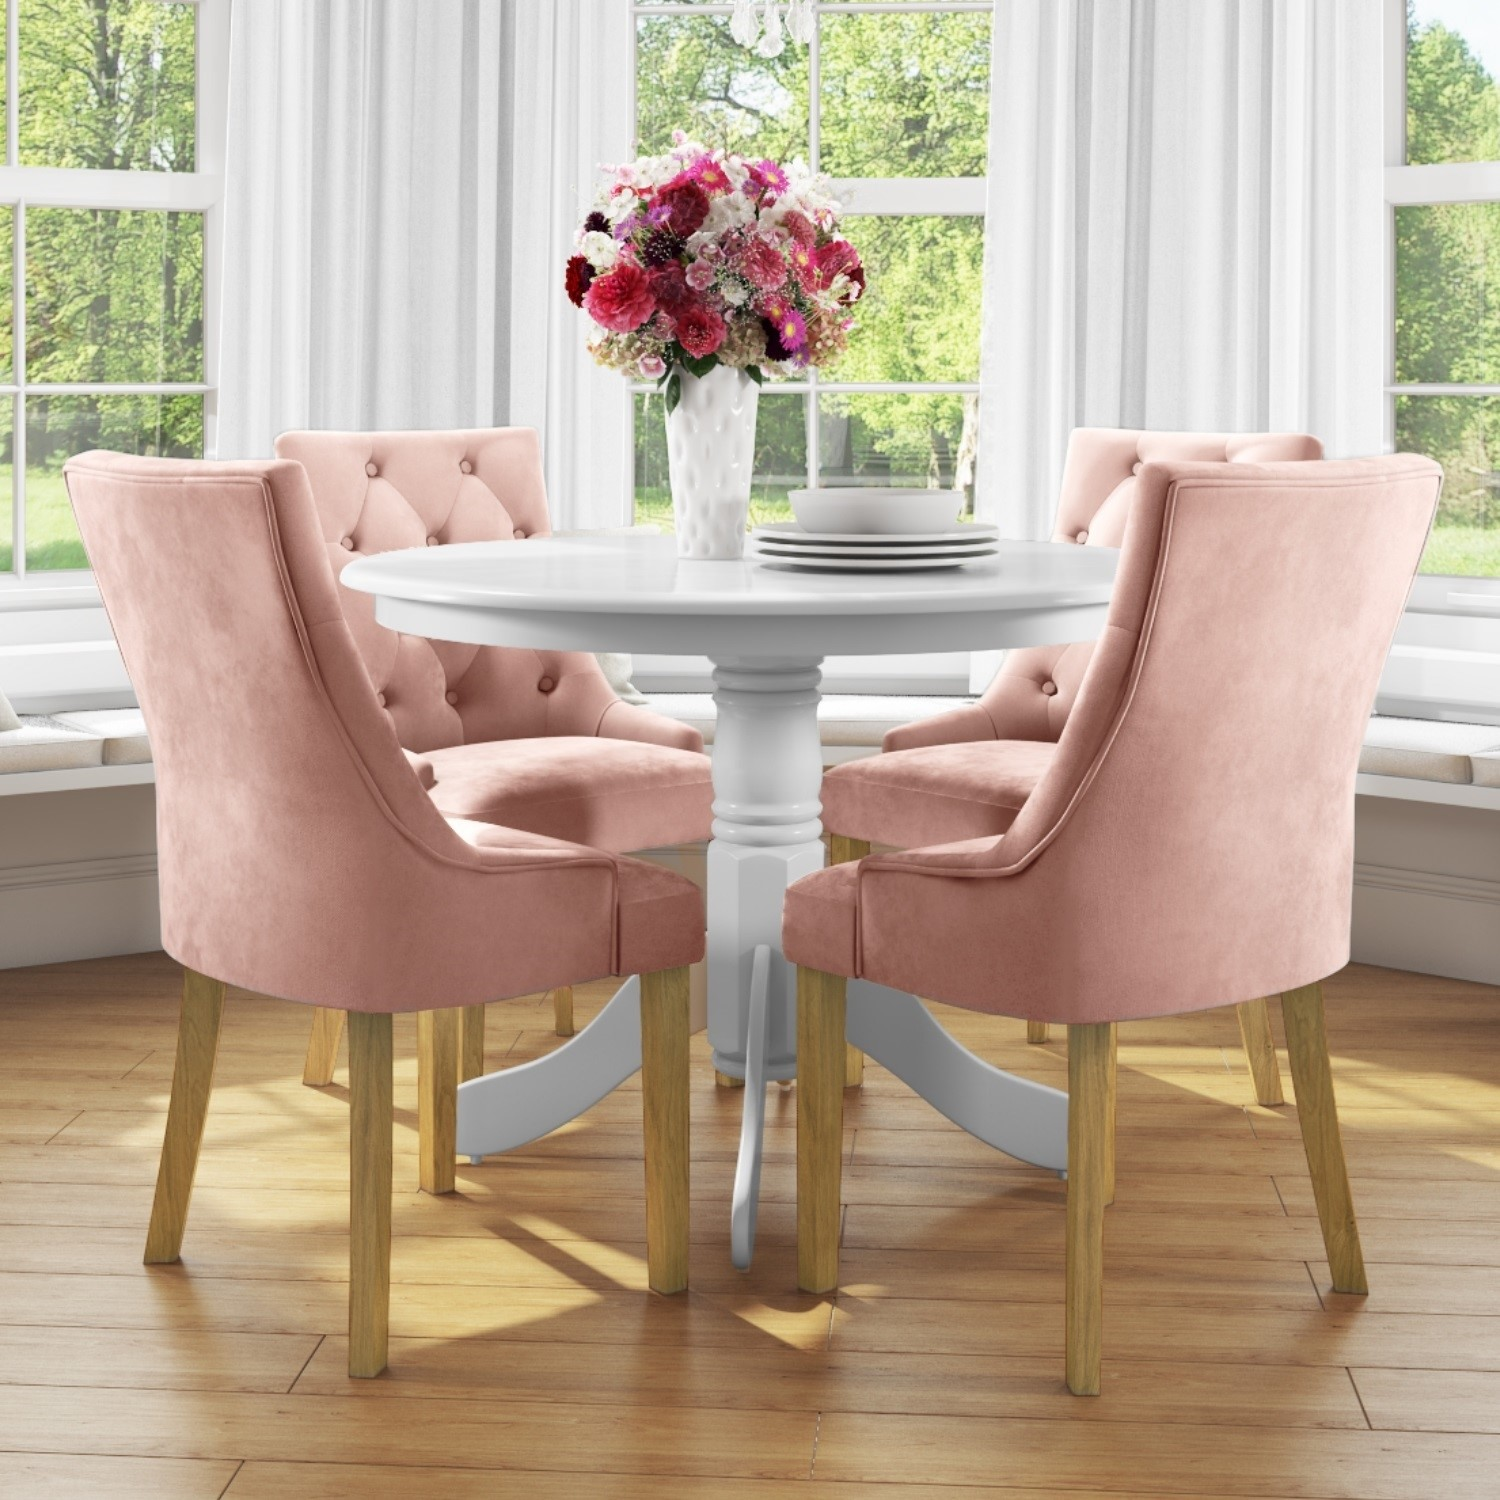 Picture of: Small Round Dining Table In White With 4 Velvet Chairs In Pink Rhode Island Kaylee Furniture123